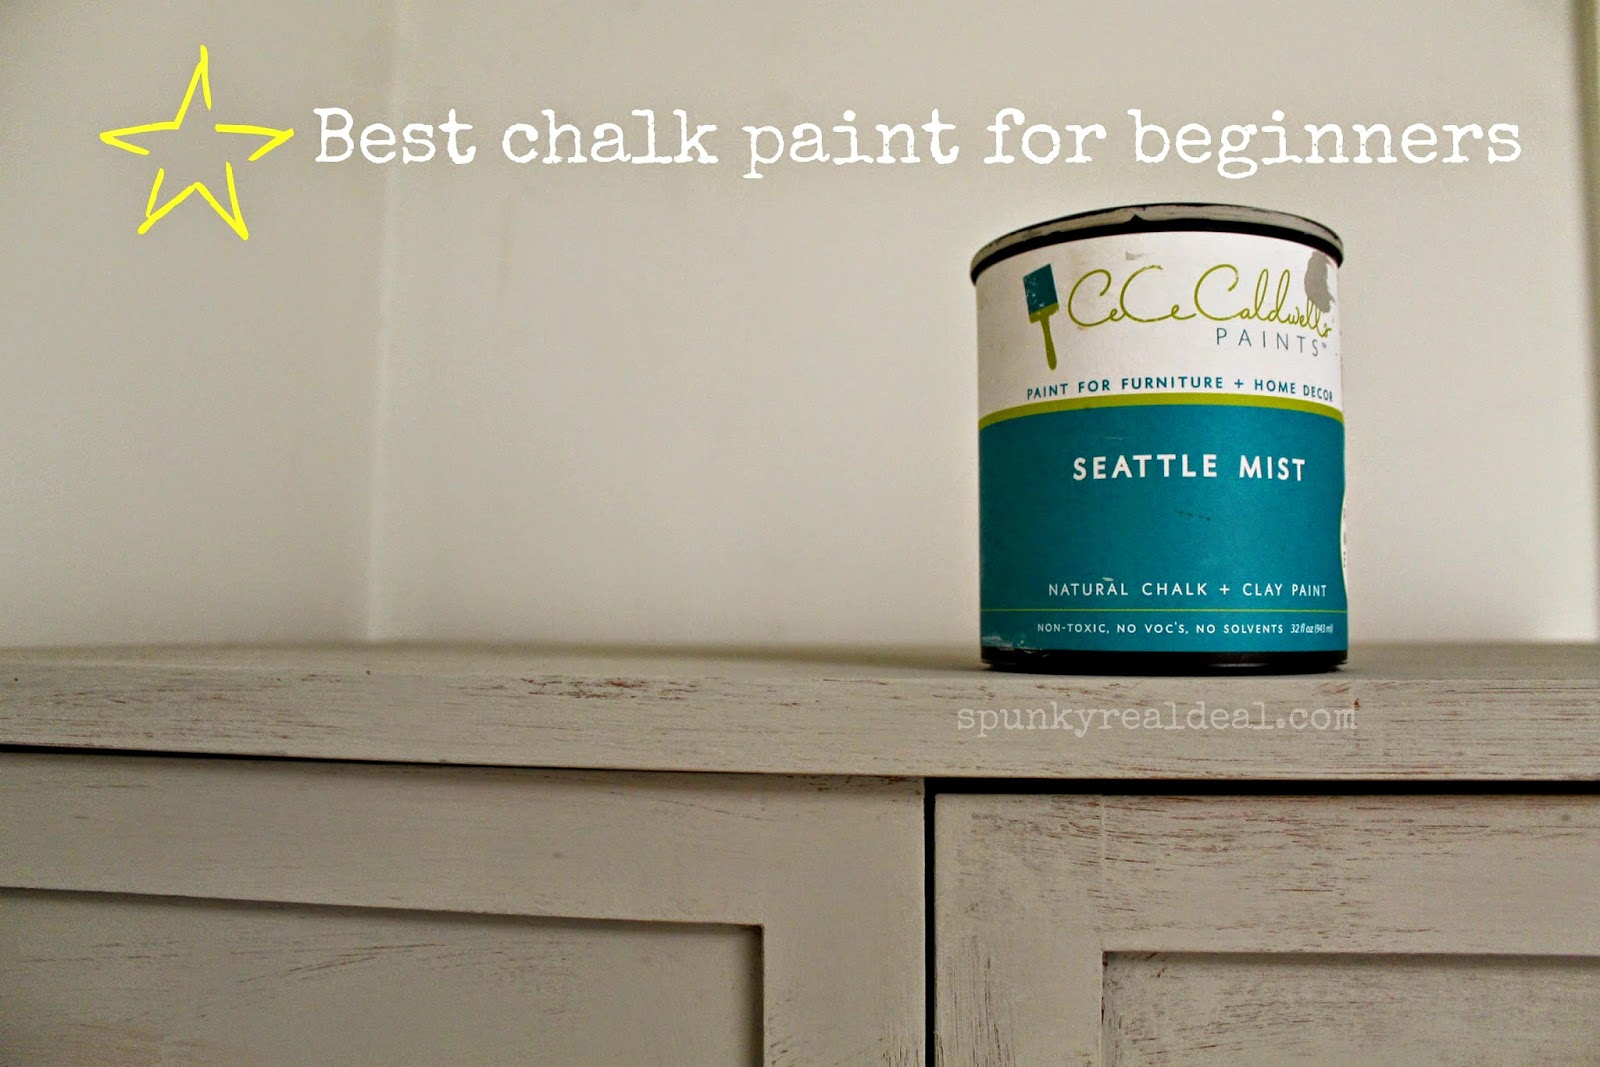 CeCe Caldwell's natural chalk and clay paint